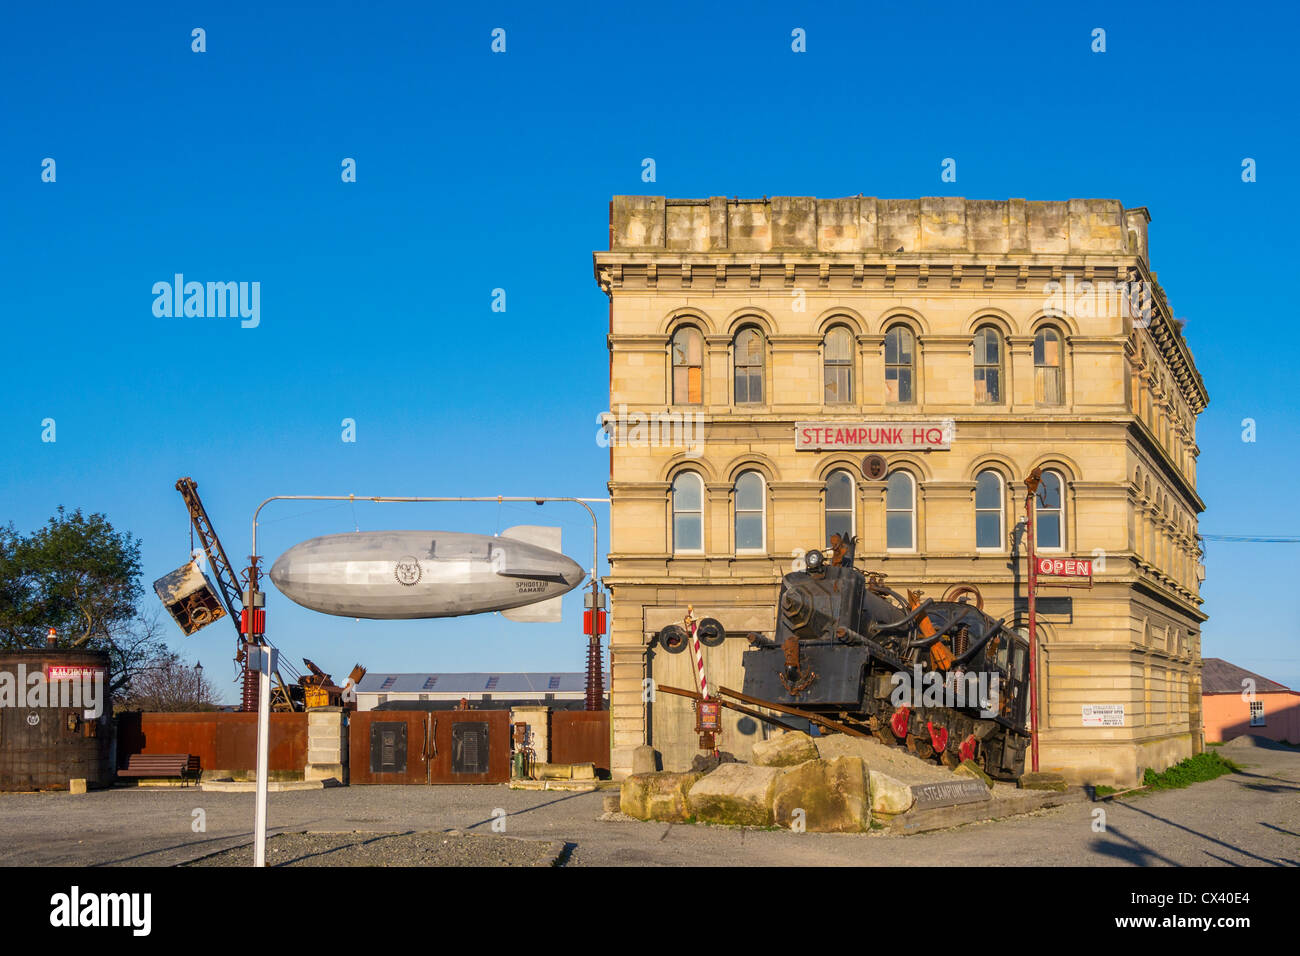 Steampunk HQ, an art gallery and work space in the Victorian Precinct, Oamaru, Otago, New Zealand - Stock Image